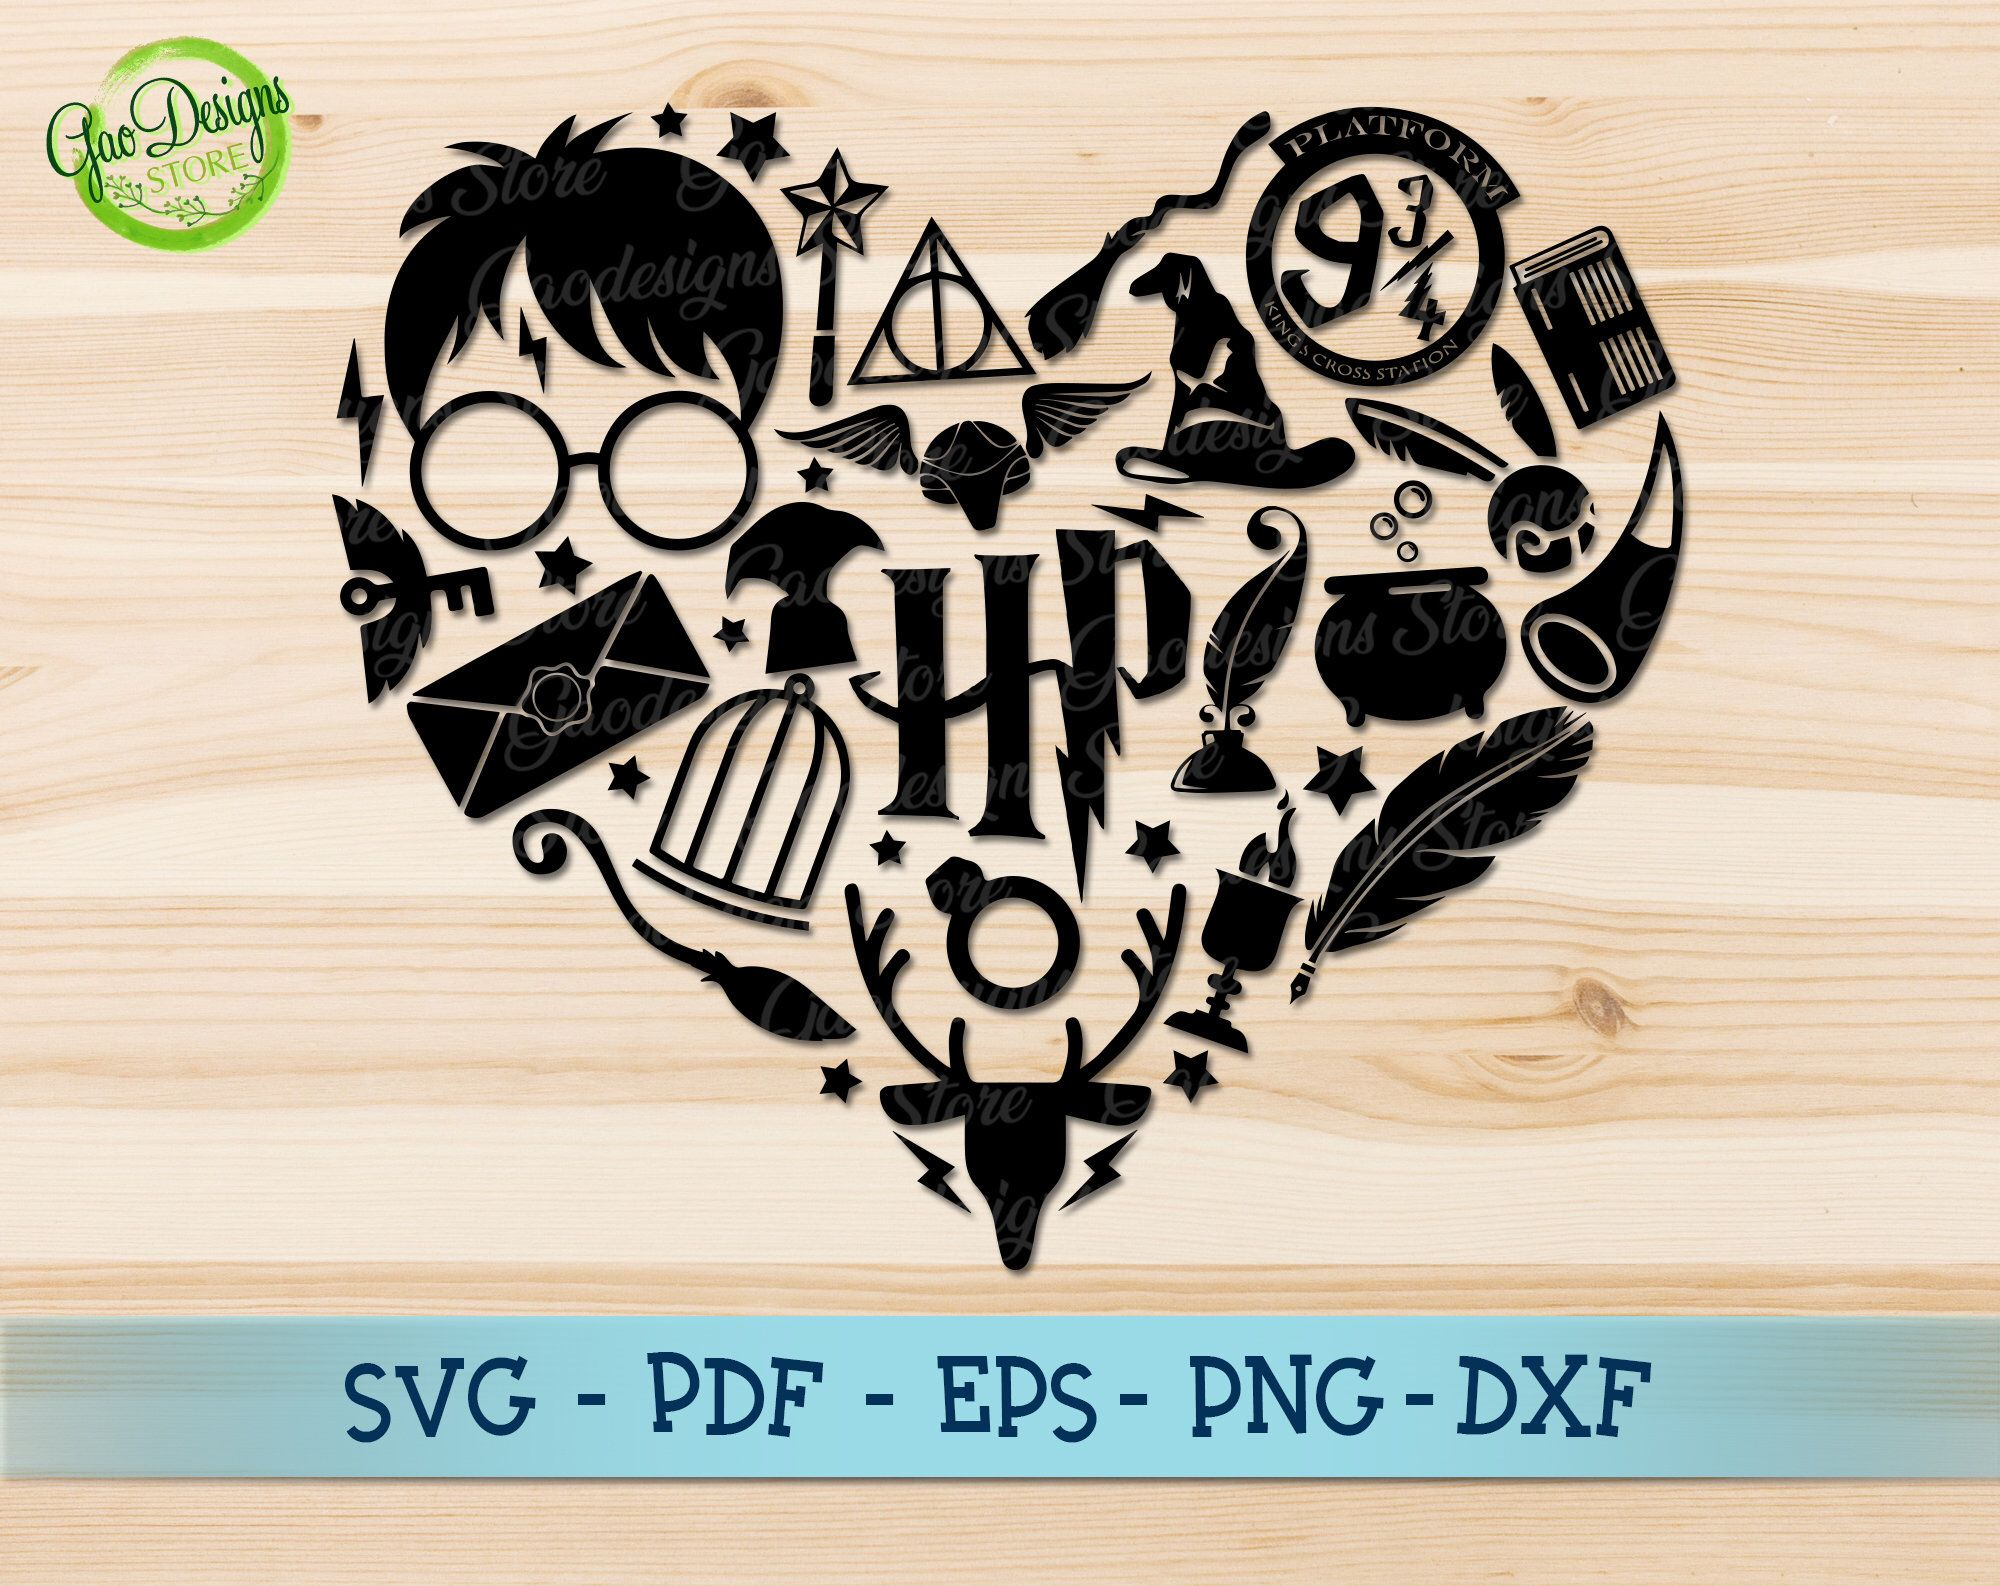 Download Pin on SVG Files for Cricut and Silhouette